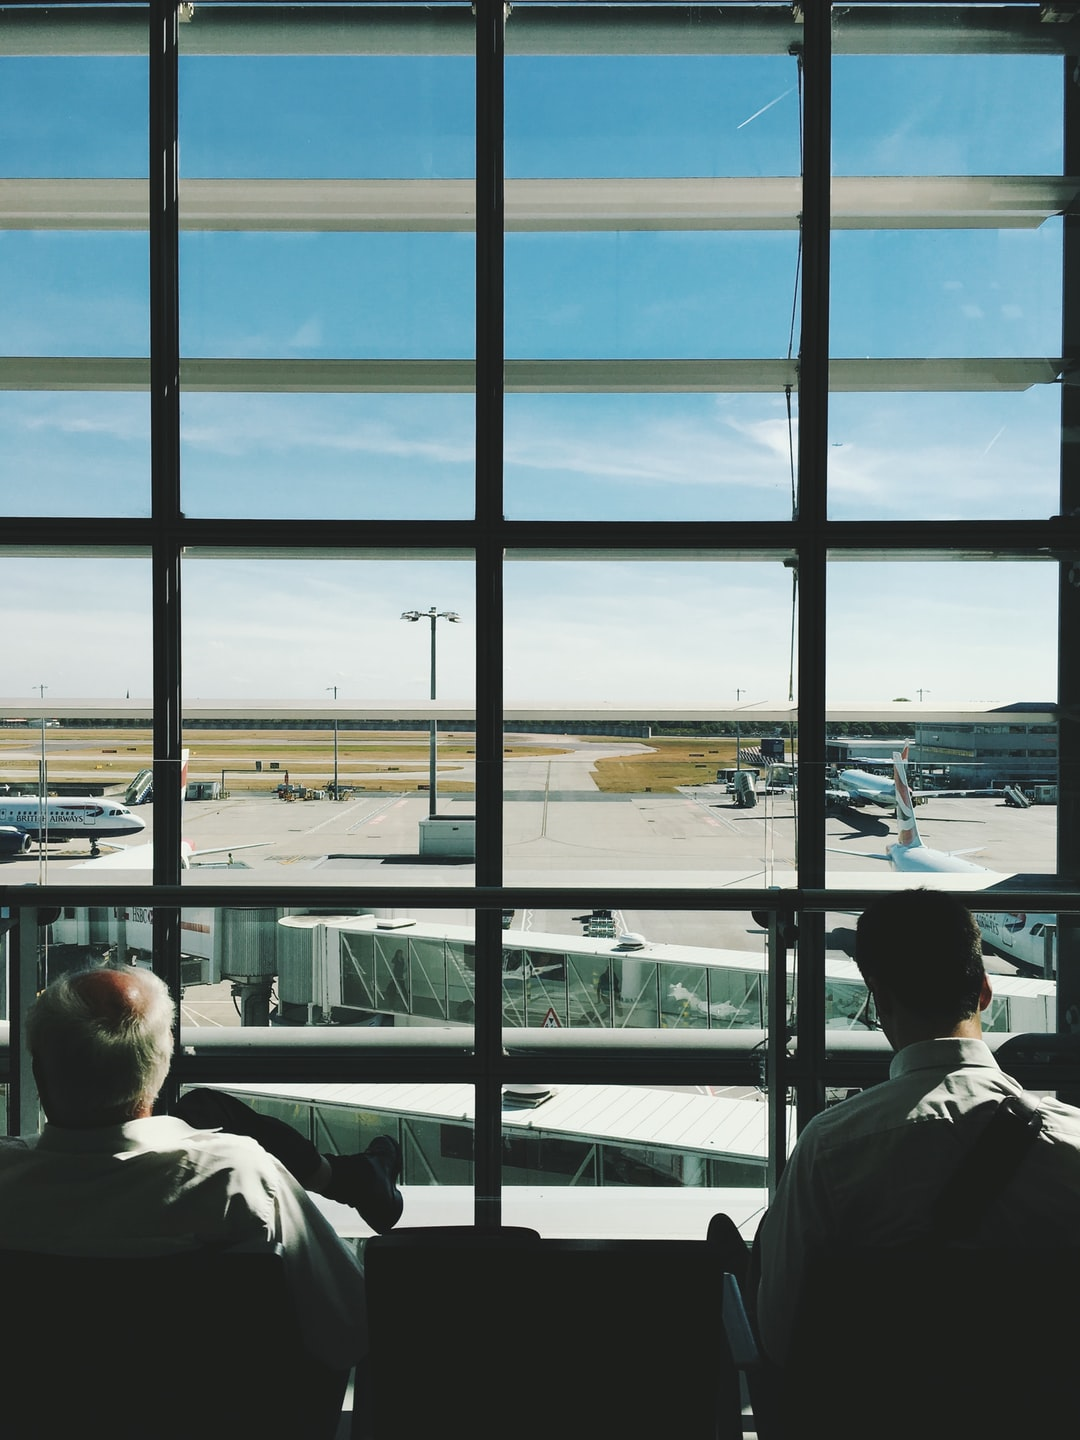 people watching planes fly